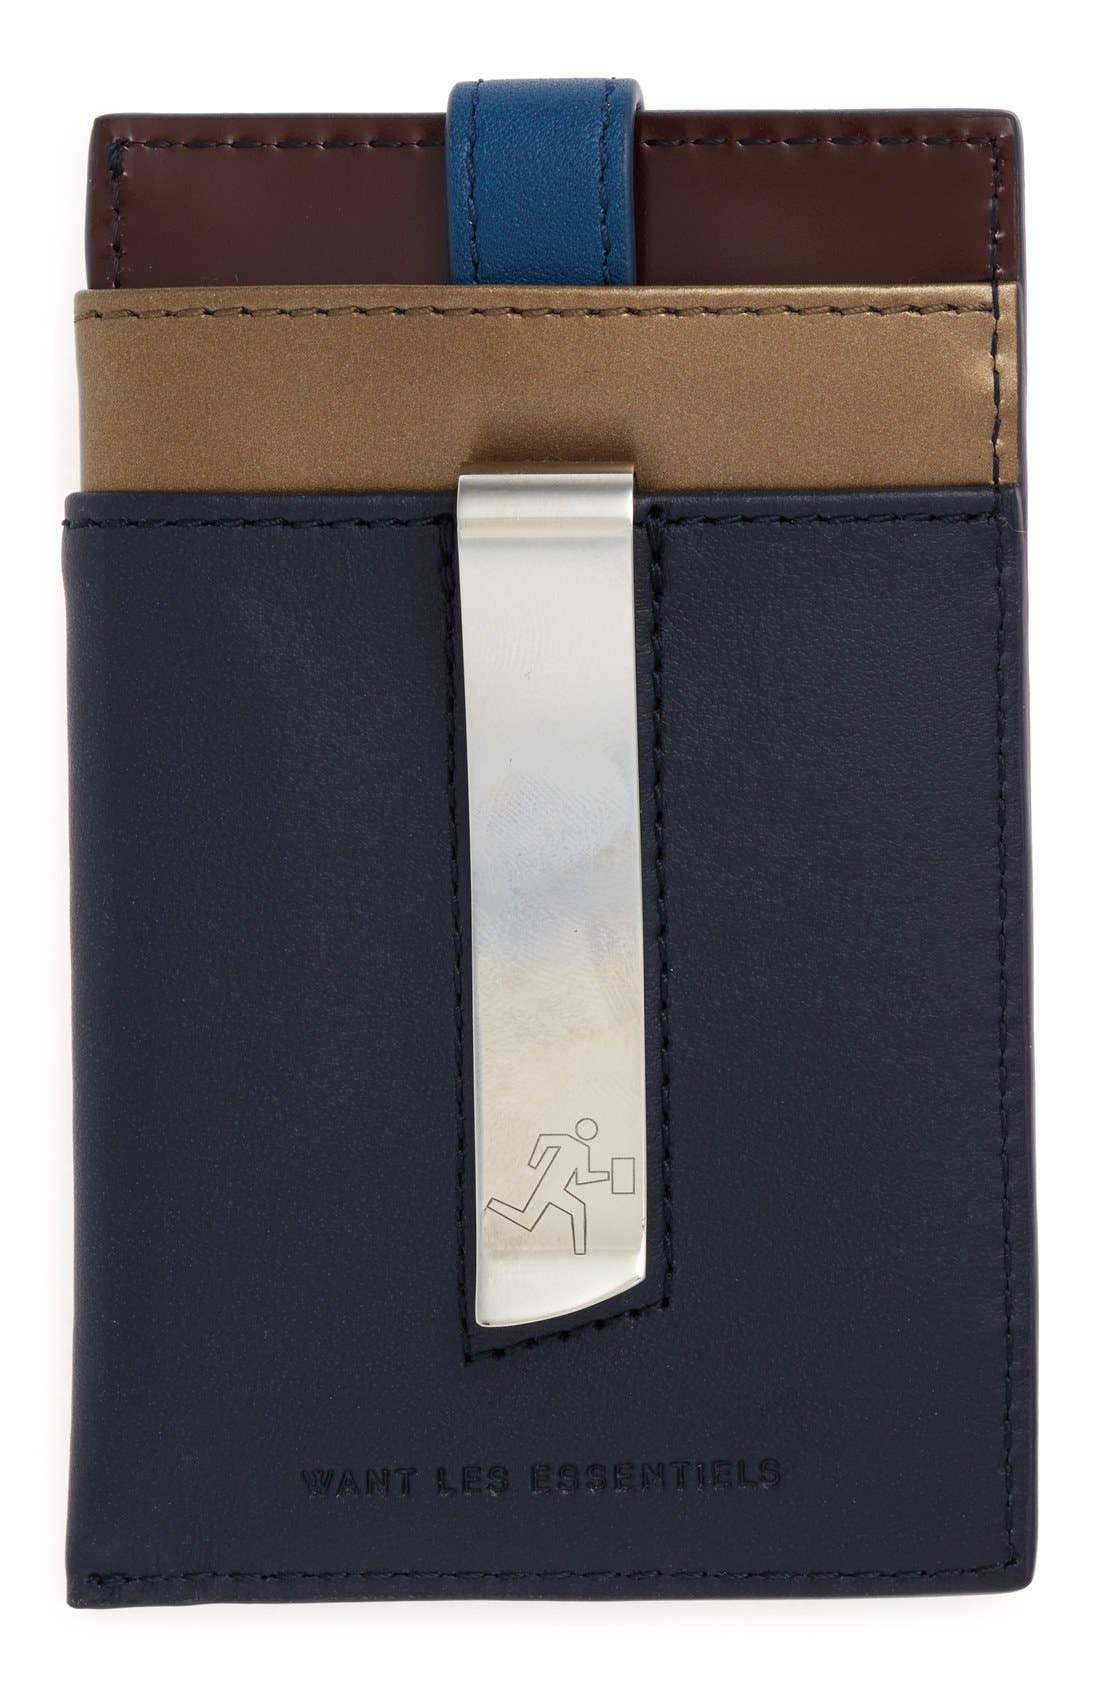 'Kennedy' Leather Money Clip Card Case,                             Alternate thumbnail 9, color,